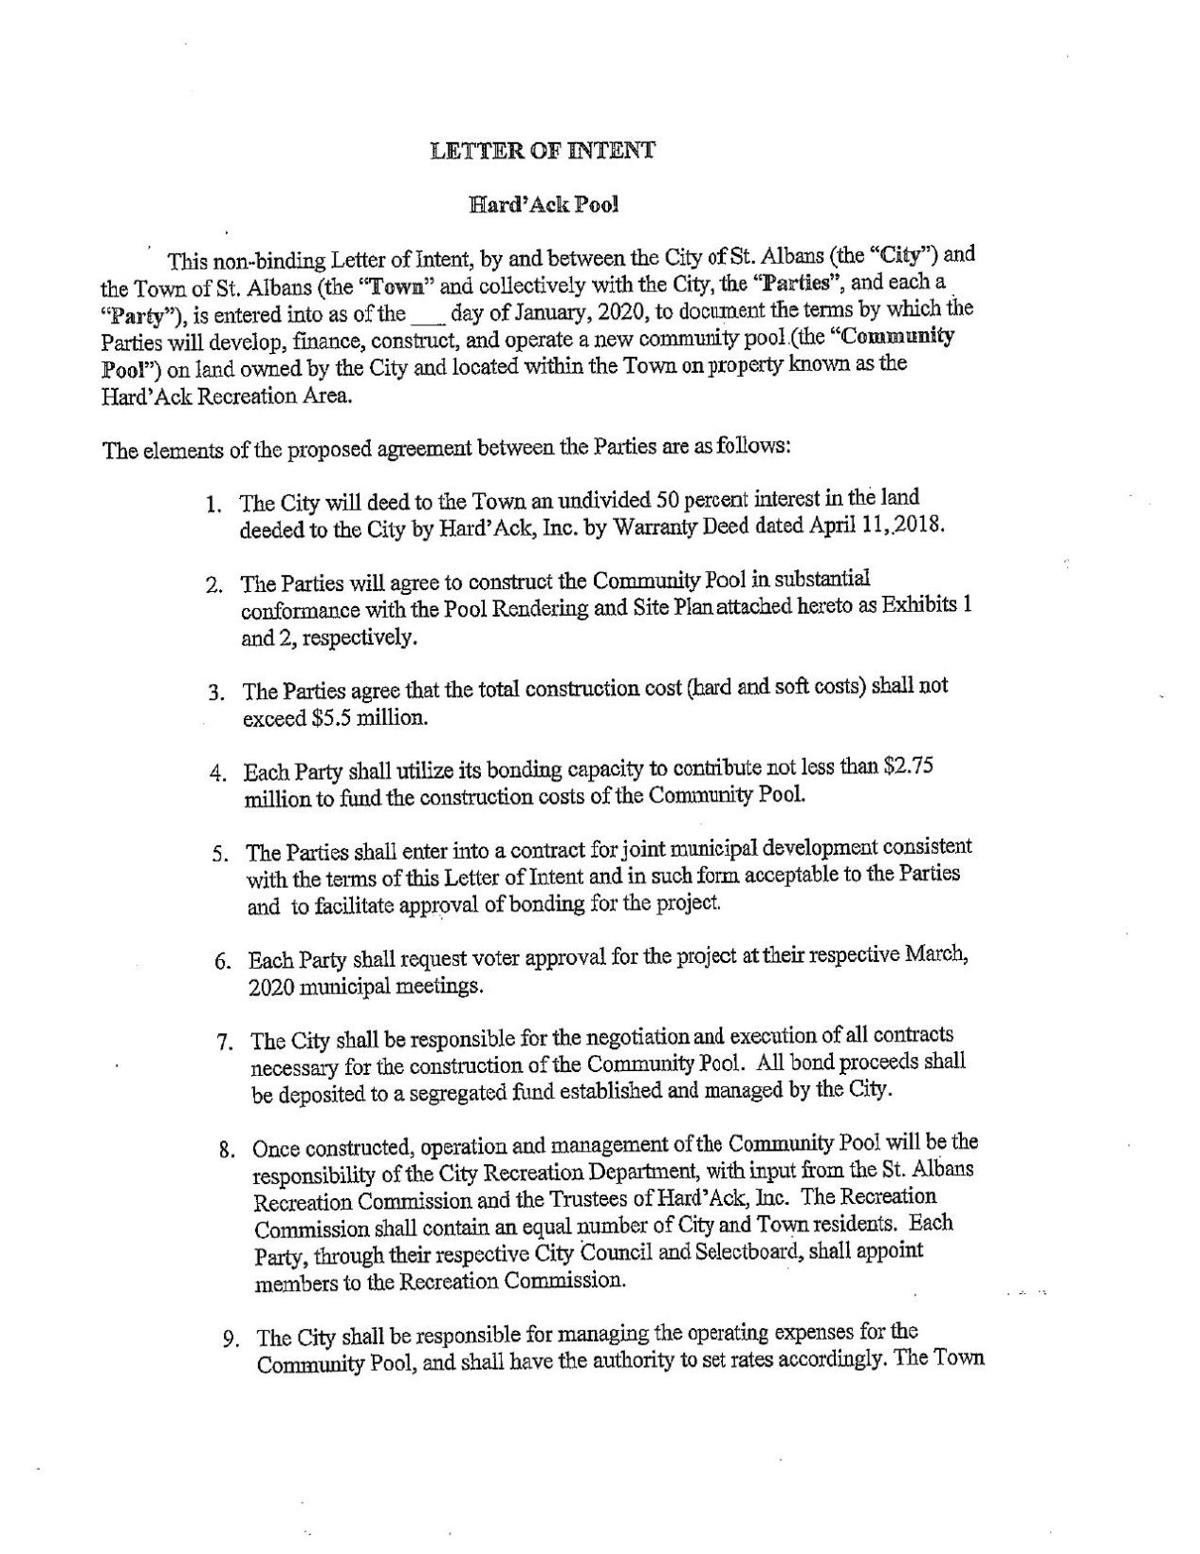 St. Albans City/Town - Letter of Intent - Page 1